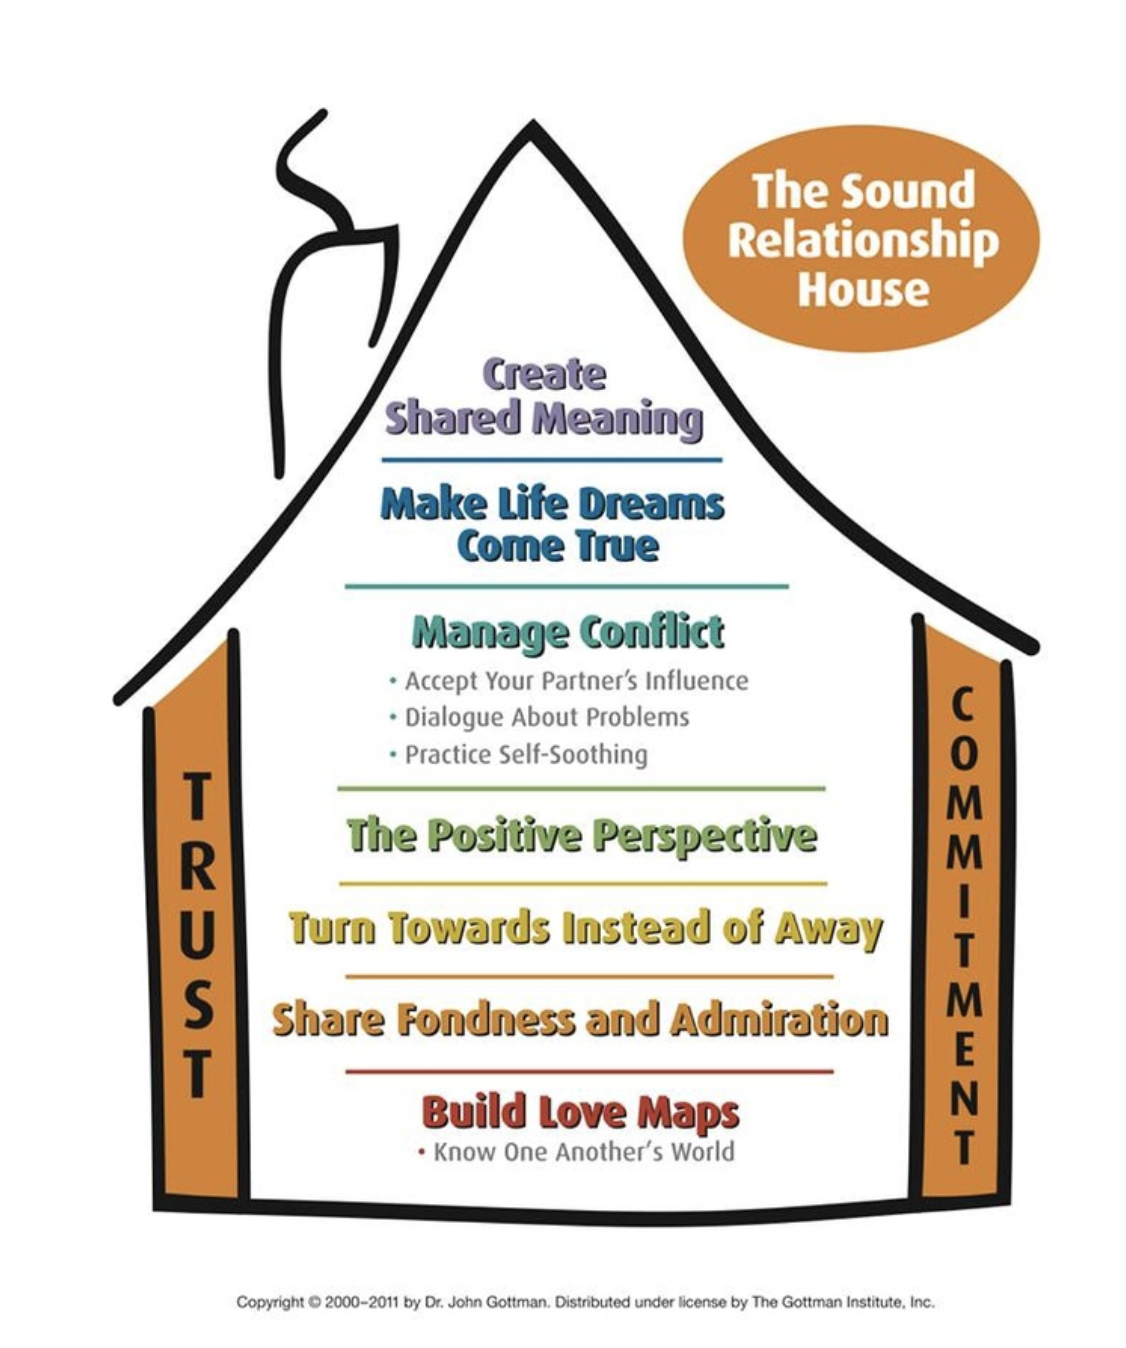 A multi-colored image of a house with 2 walls, and 7 floors labeled with the 9 components of the Sound Relationship House.